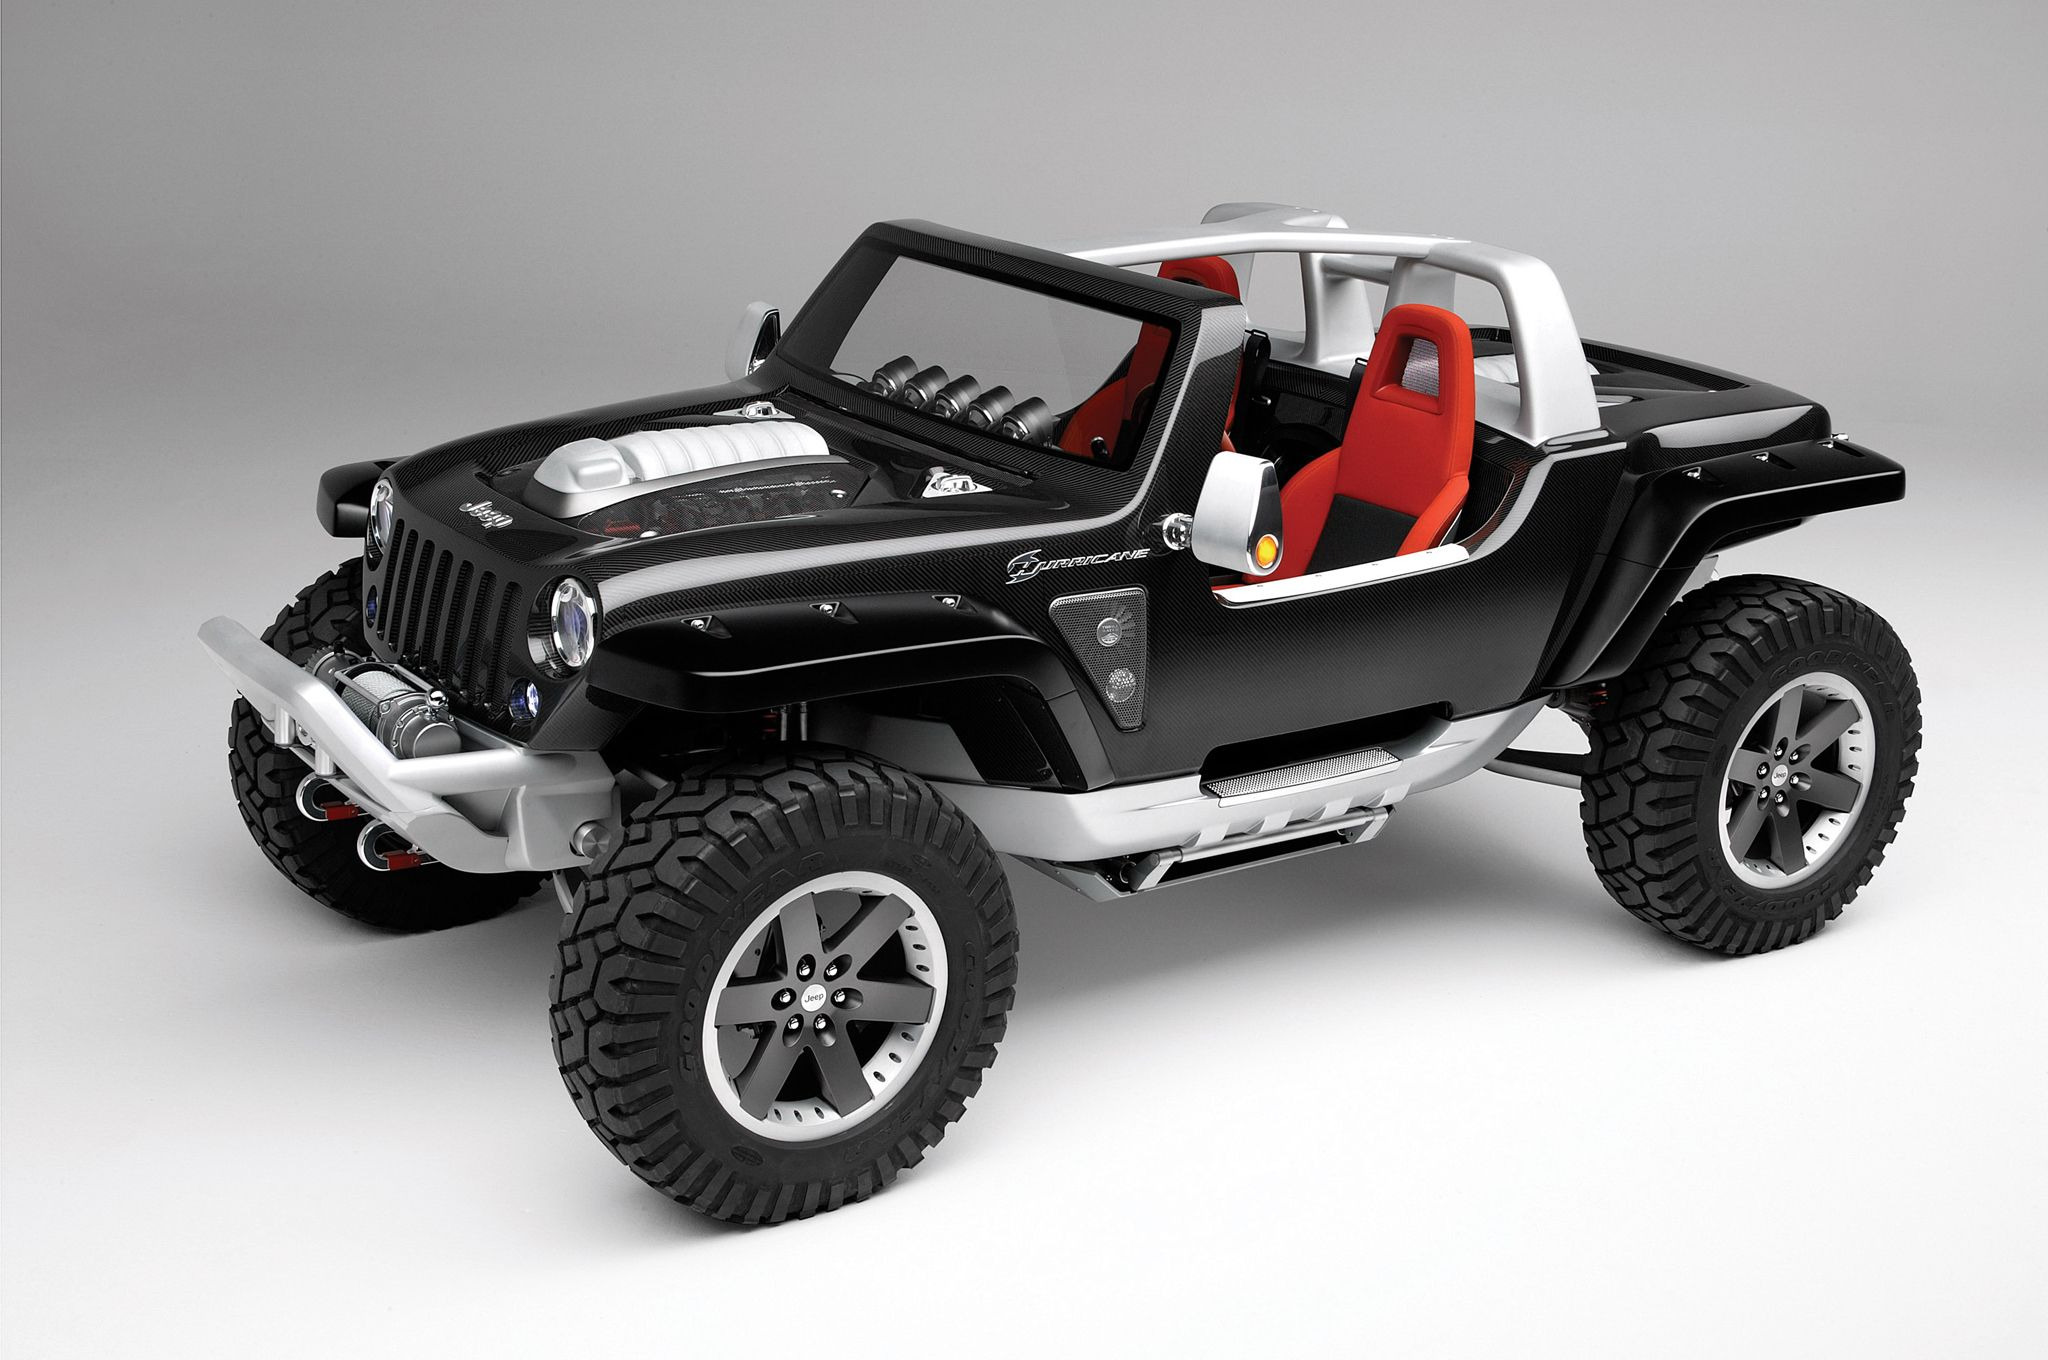 2019 Jeep Wrangler photo - 6